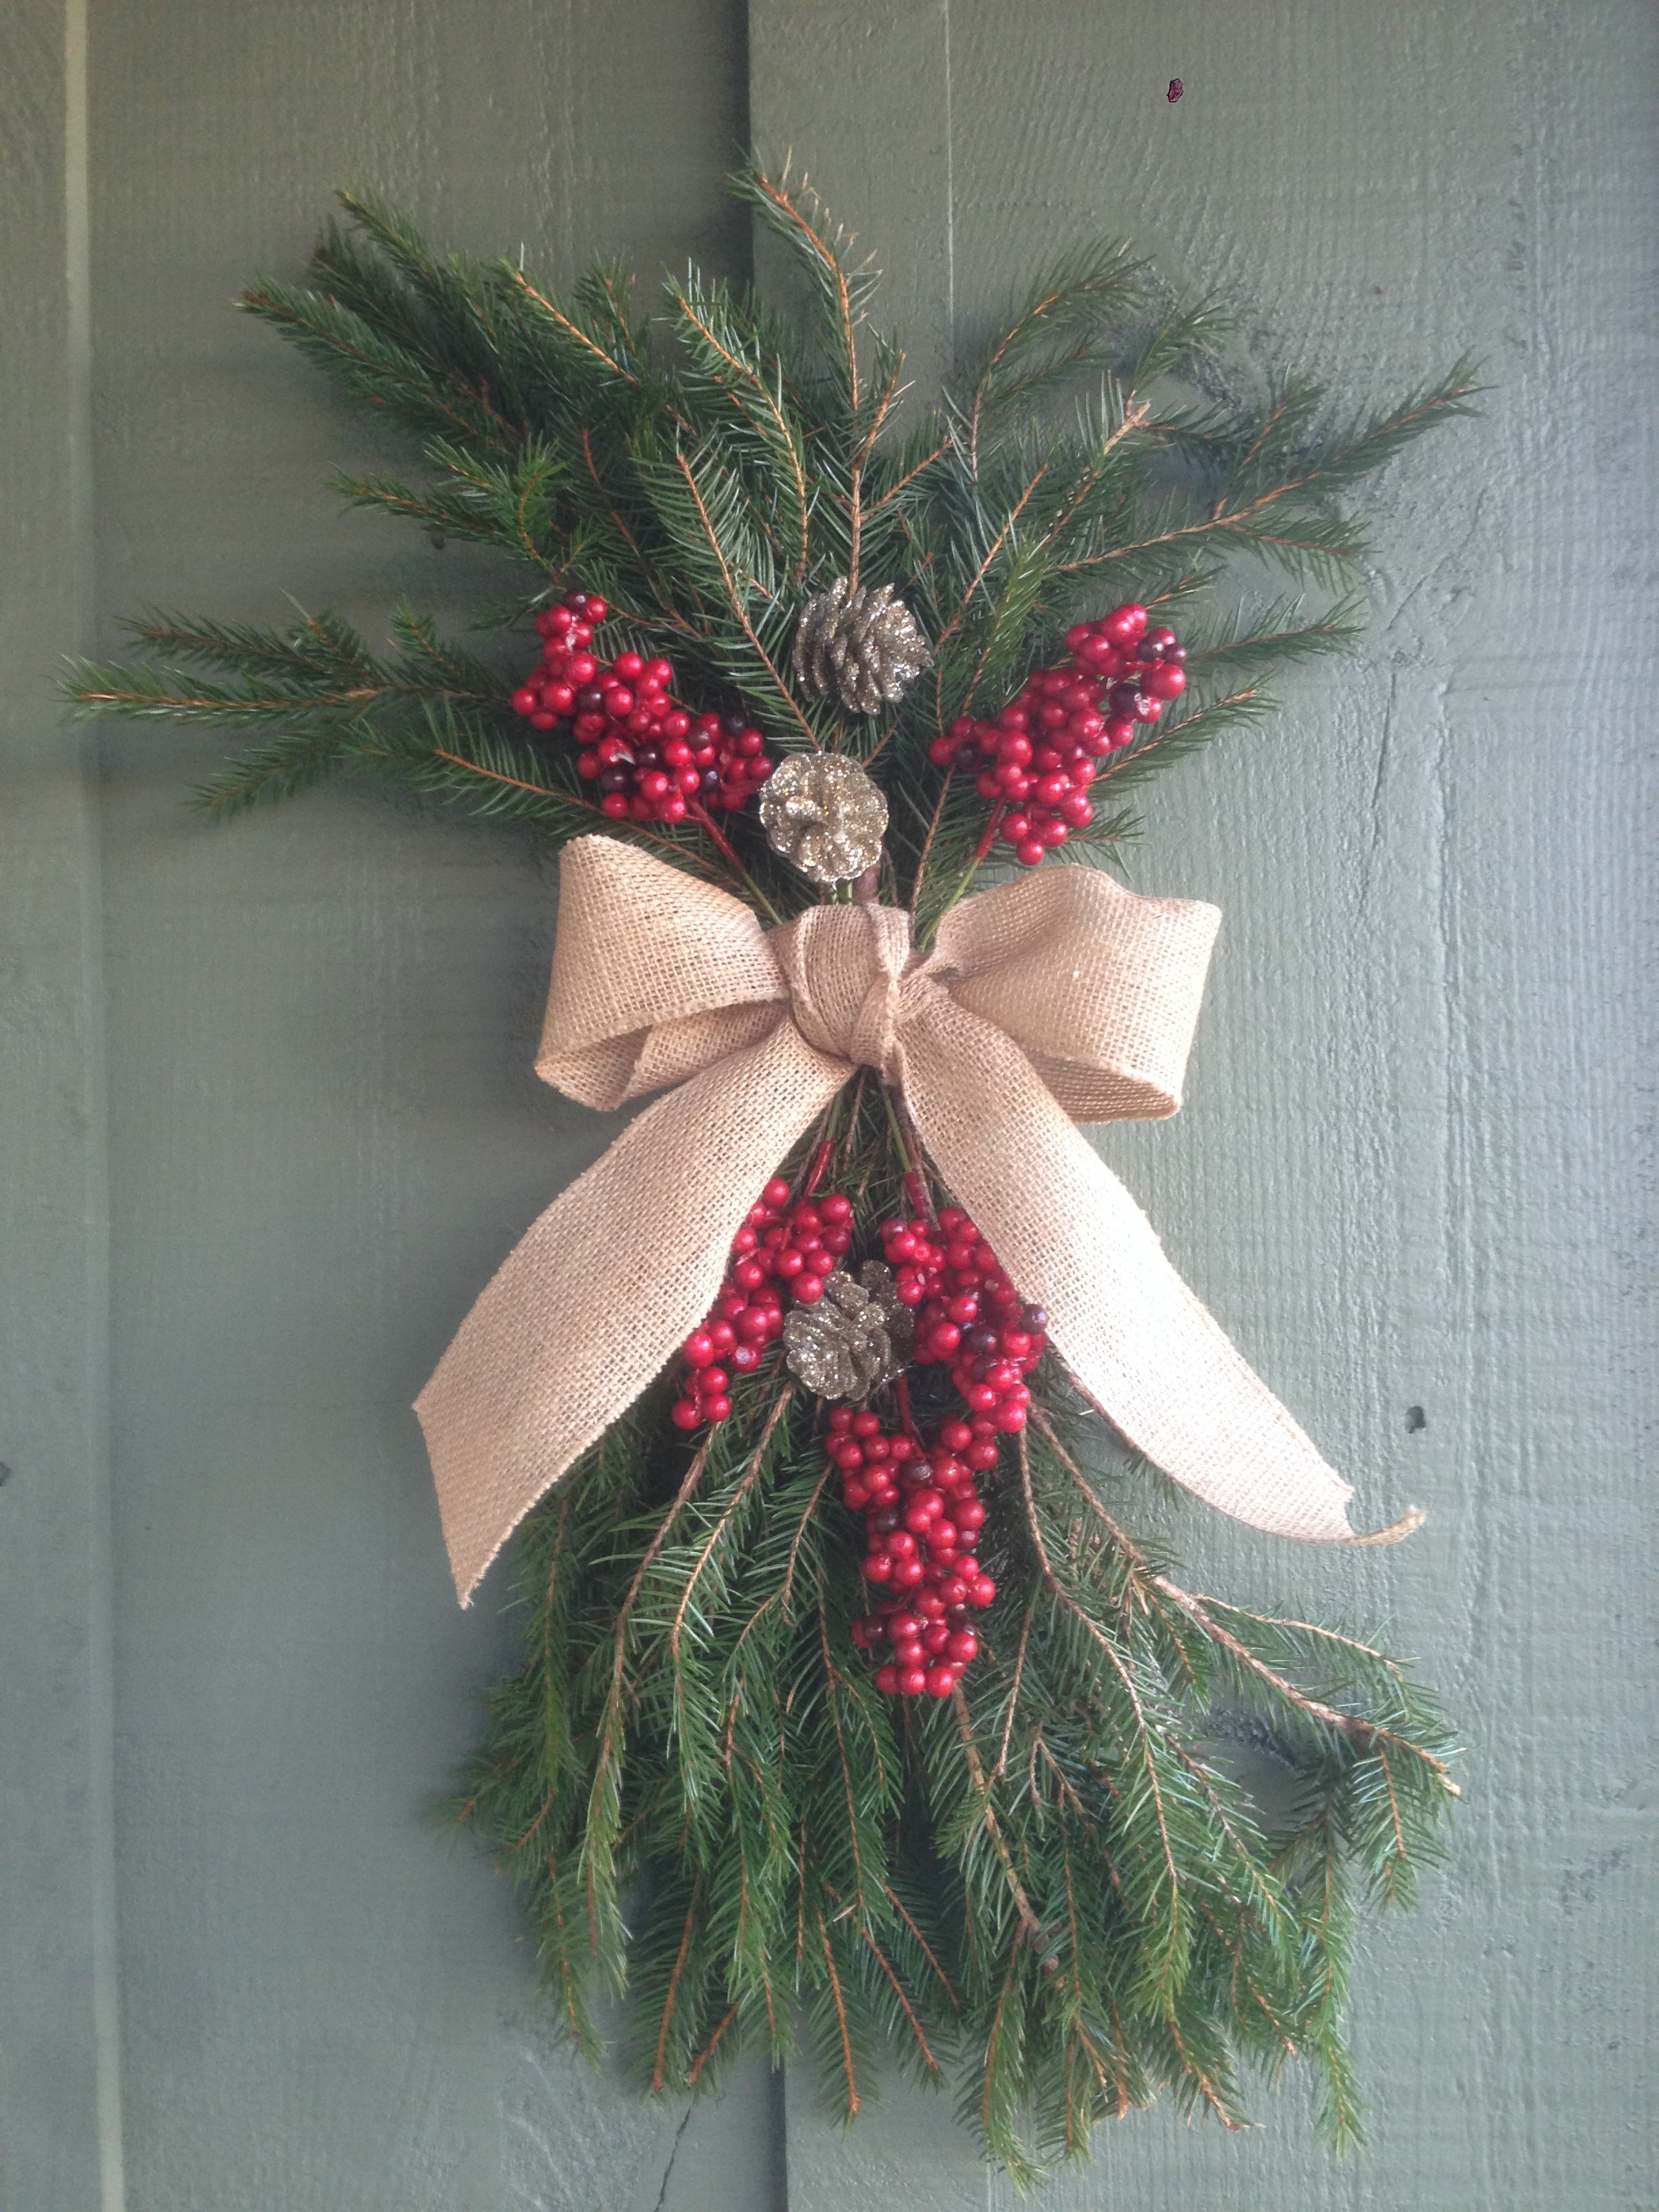 Christmas Swag Leftover Branches Trimmed From The Christmas Tree Red Berries And Glitter Pine Co Ribbon On Christmas Tree Christmas Swags Christmas Tree Lots